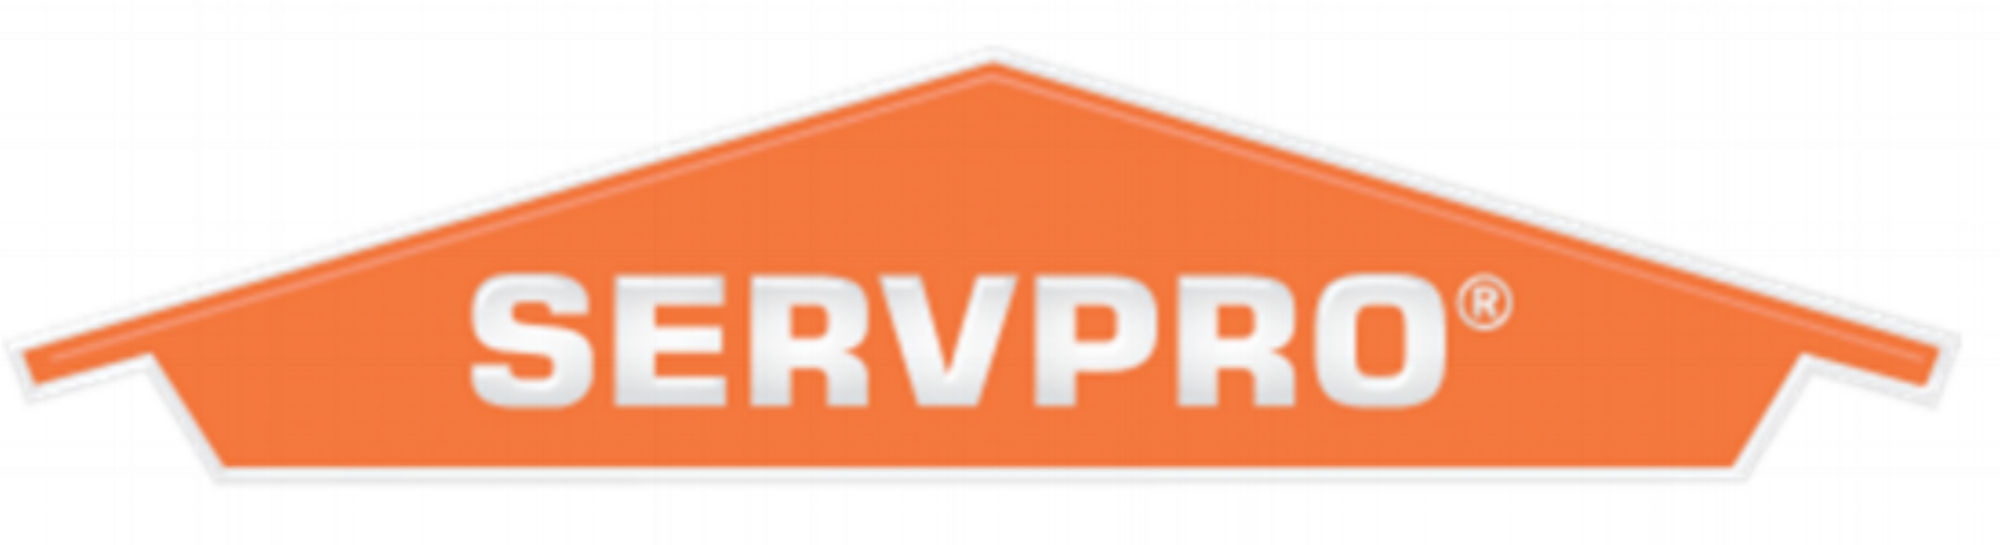 servepro cropped.PNG